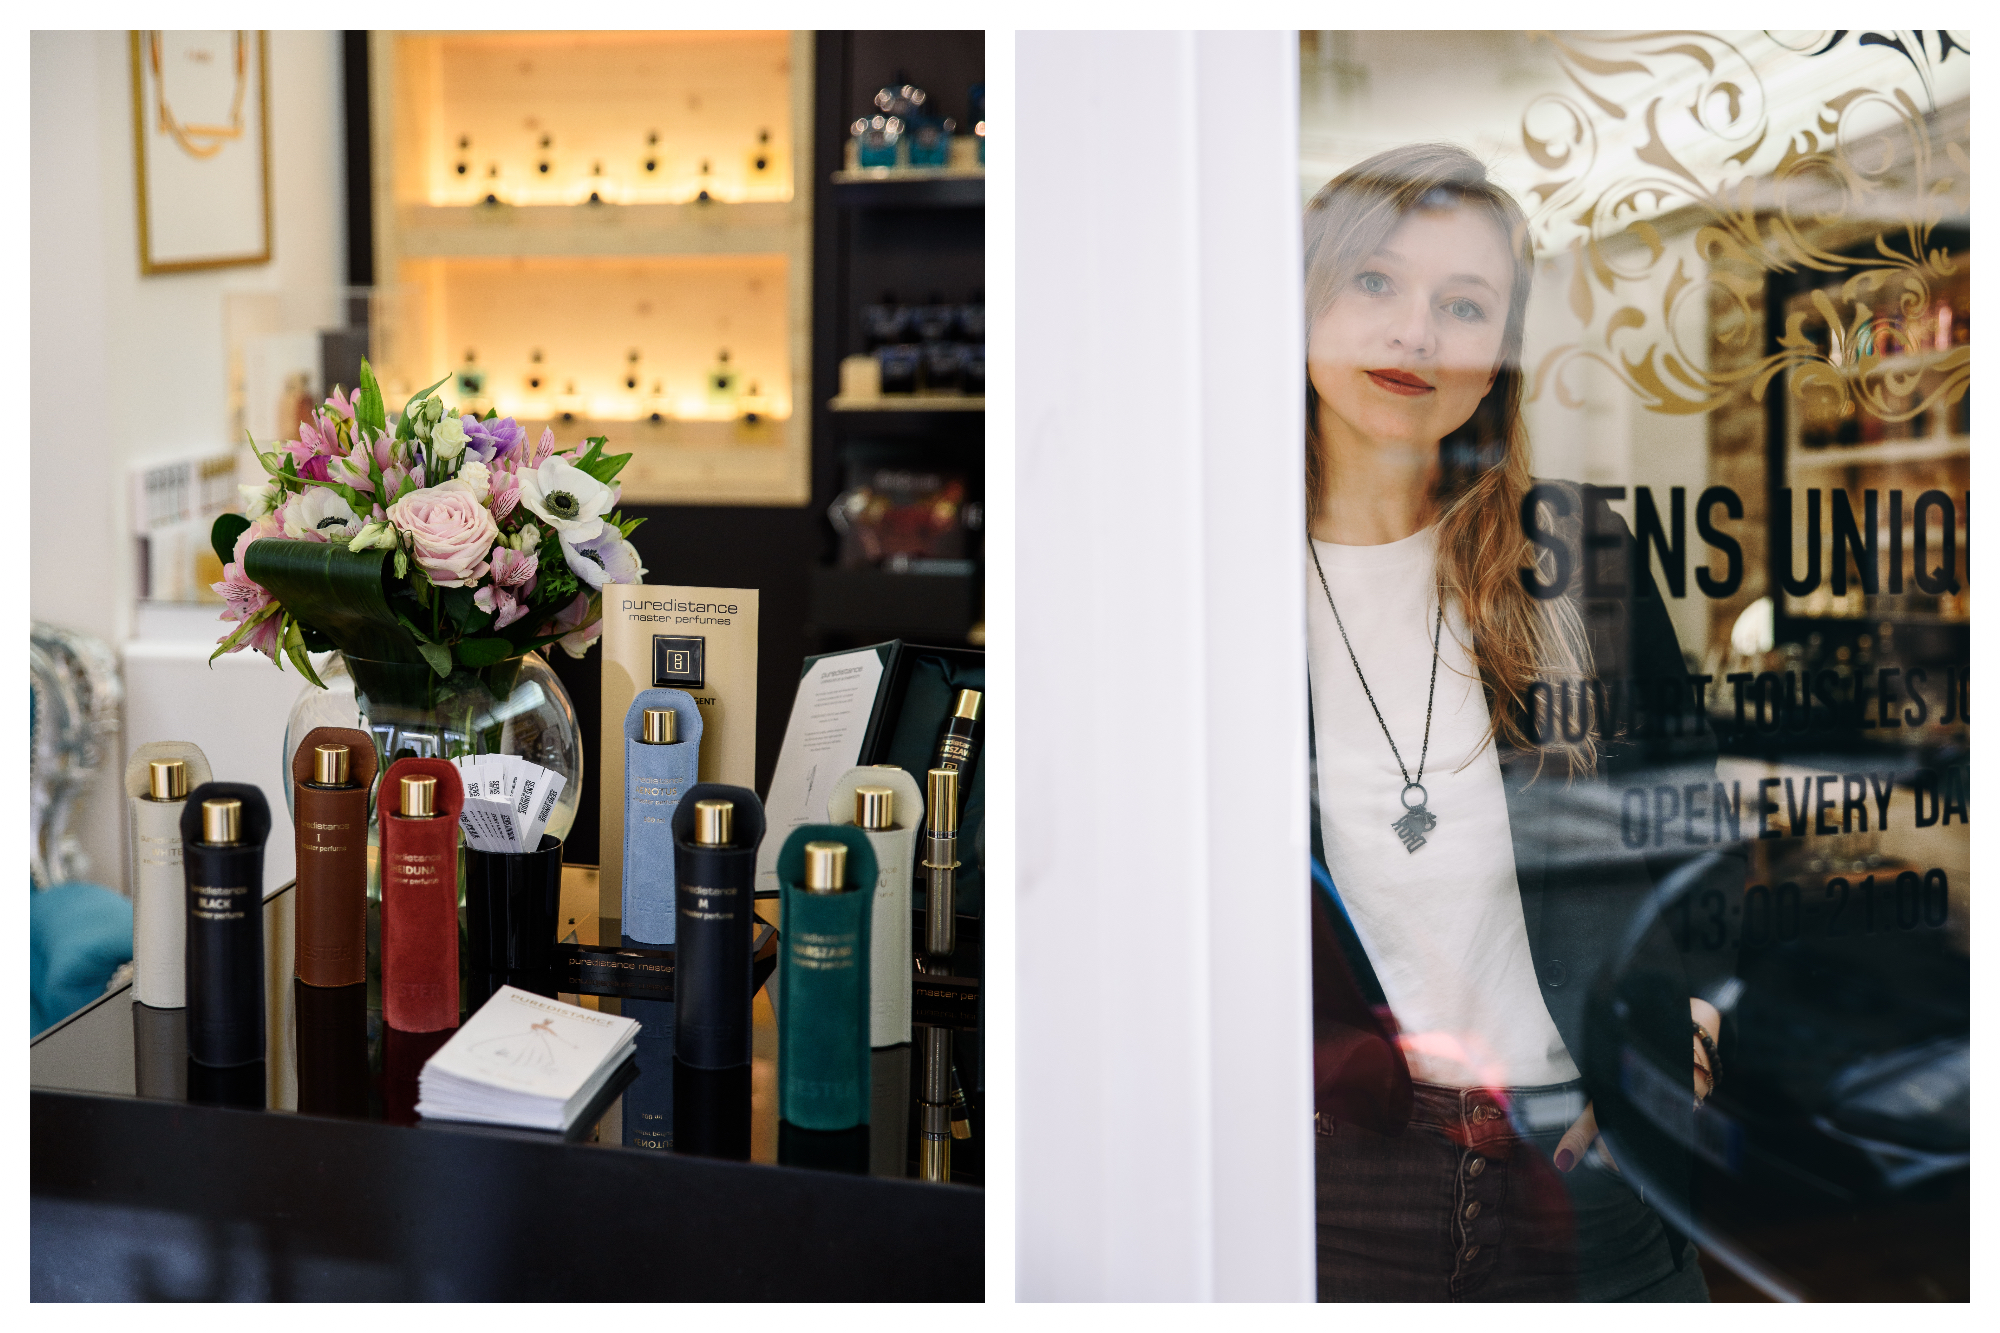 On left: Golden-capped bottles of perfume sit snuggly in leather pouches of different colors, next to an overflowing bouquet of roses and anemones at a Sens Unique boutique, which stocks only bottles from niche perfumeries. On right: A shopgirl gives a shy smile from the window of the Sens Unique shop, an intimate, chic destination for exclusive perfumes.